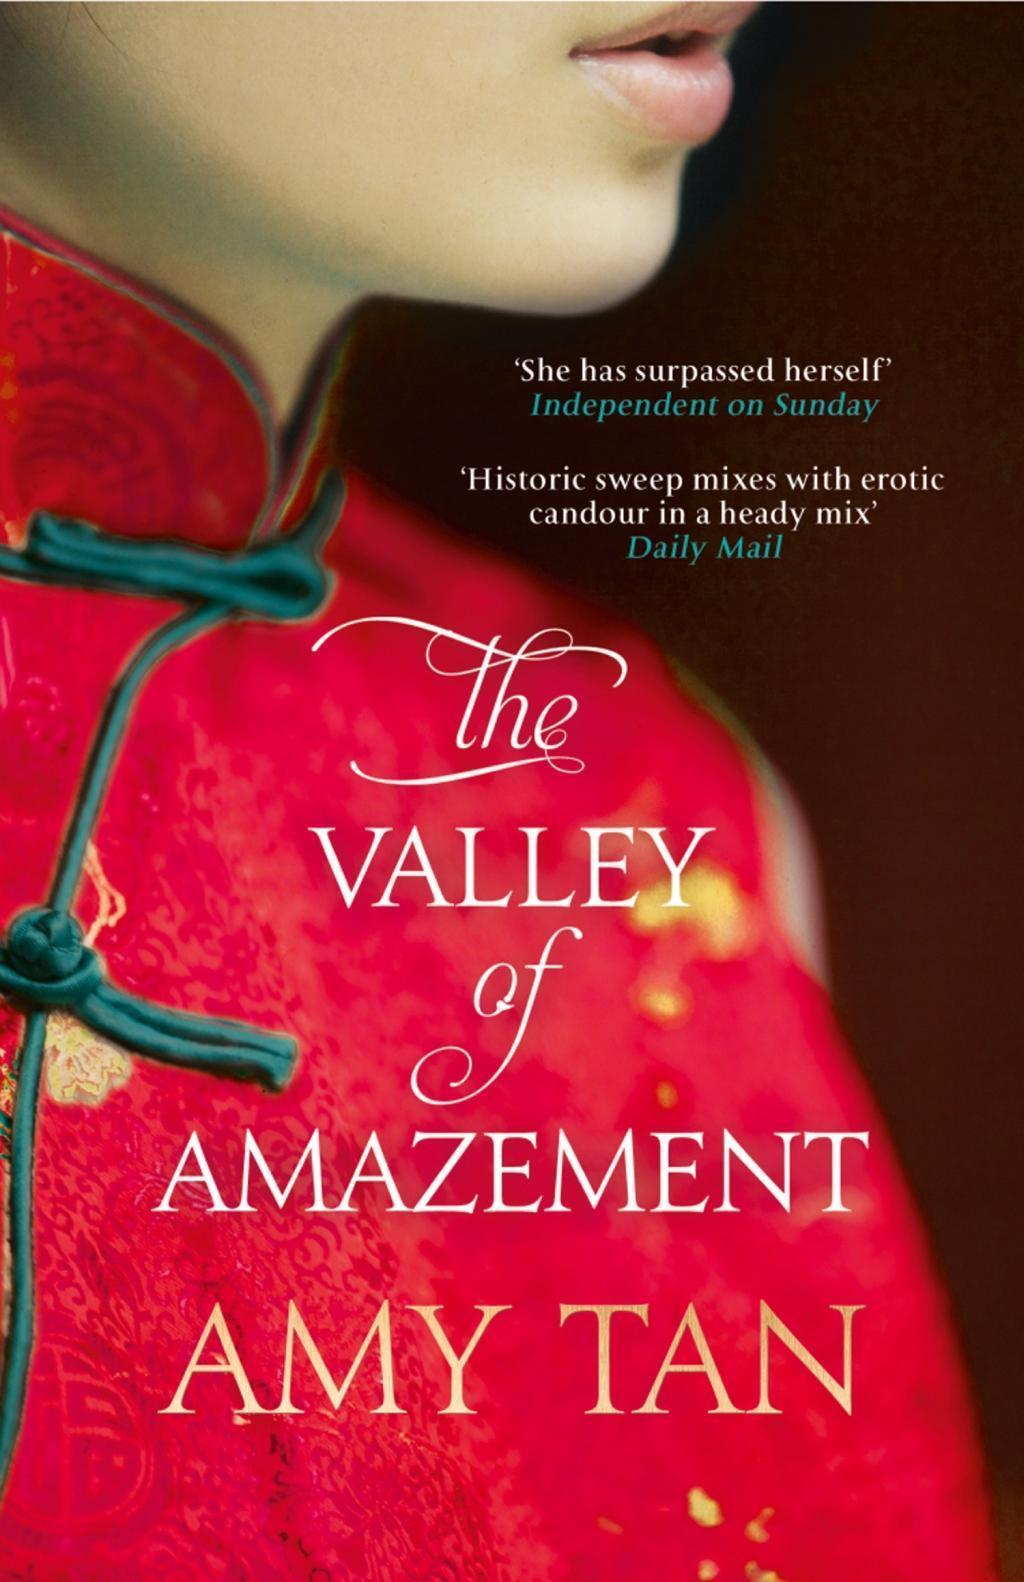 The Valley of Amazement